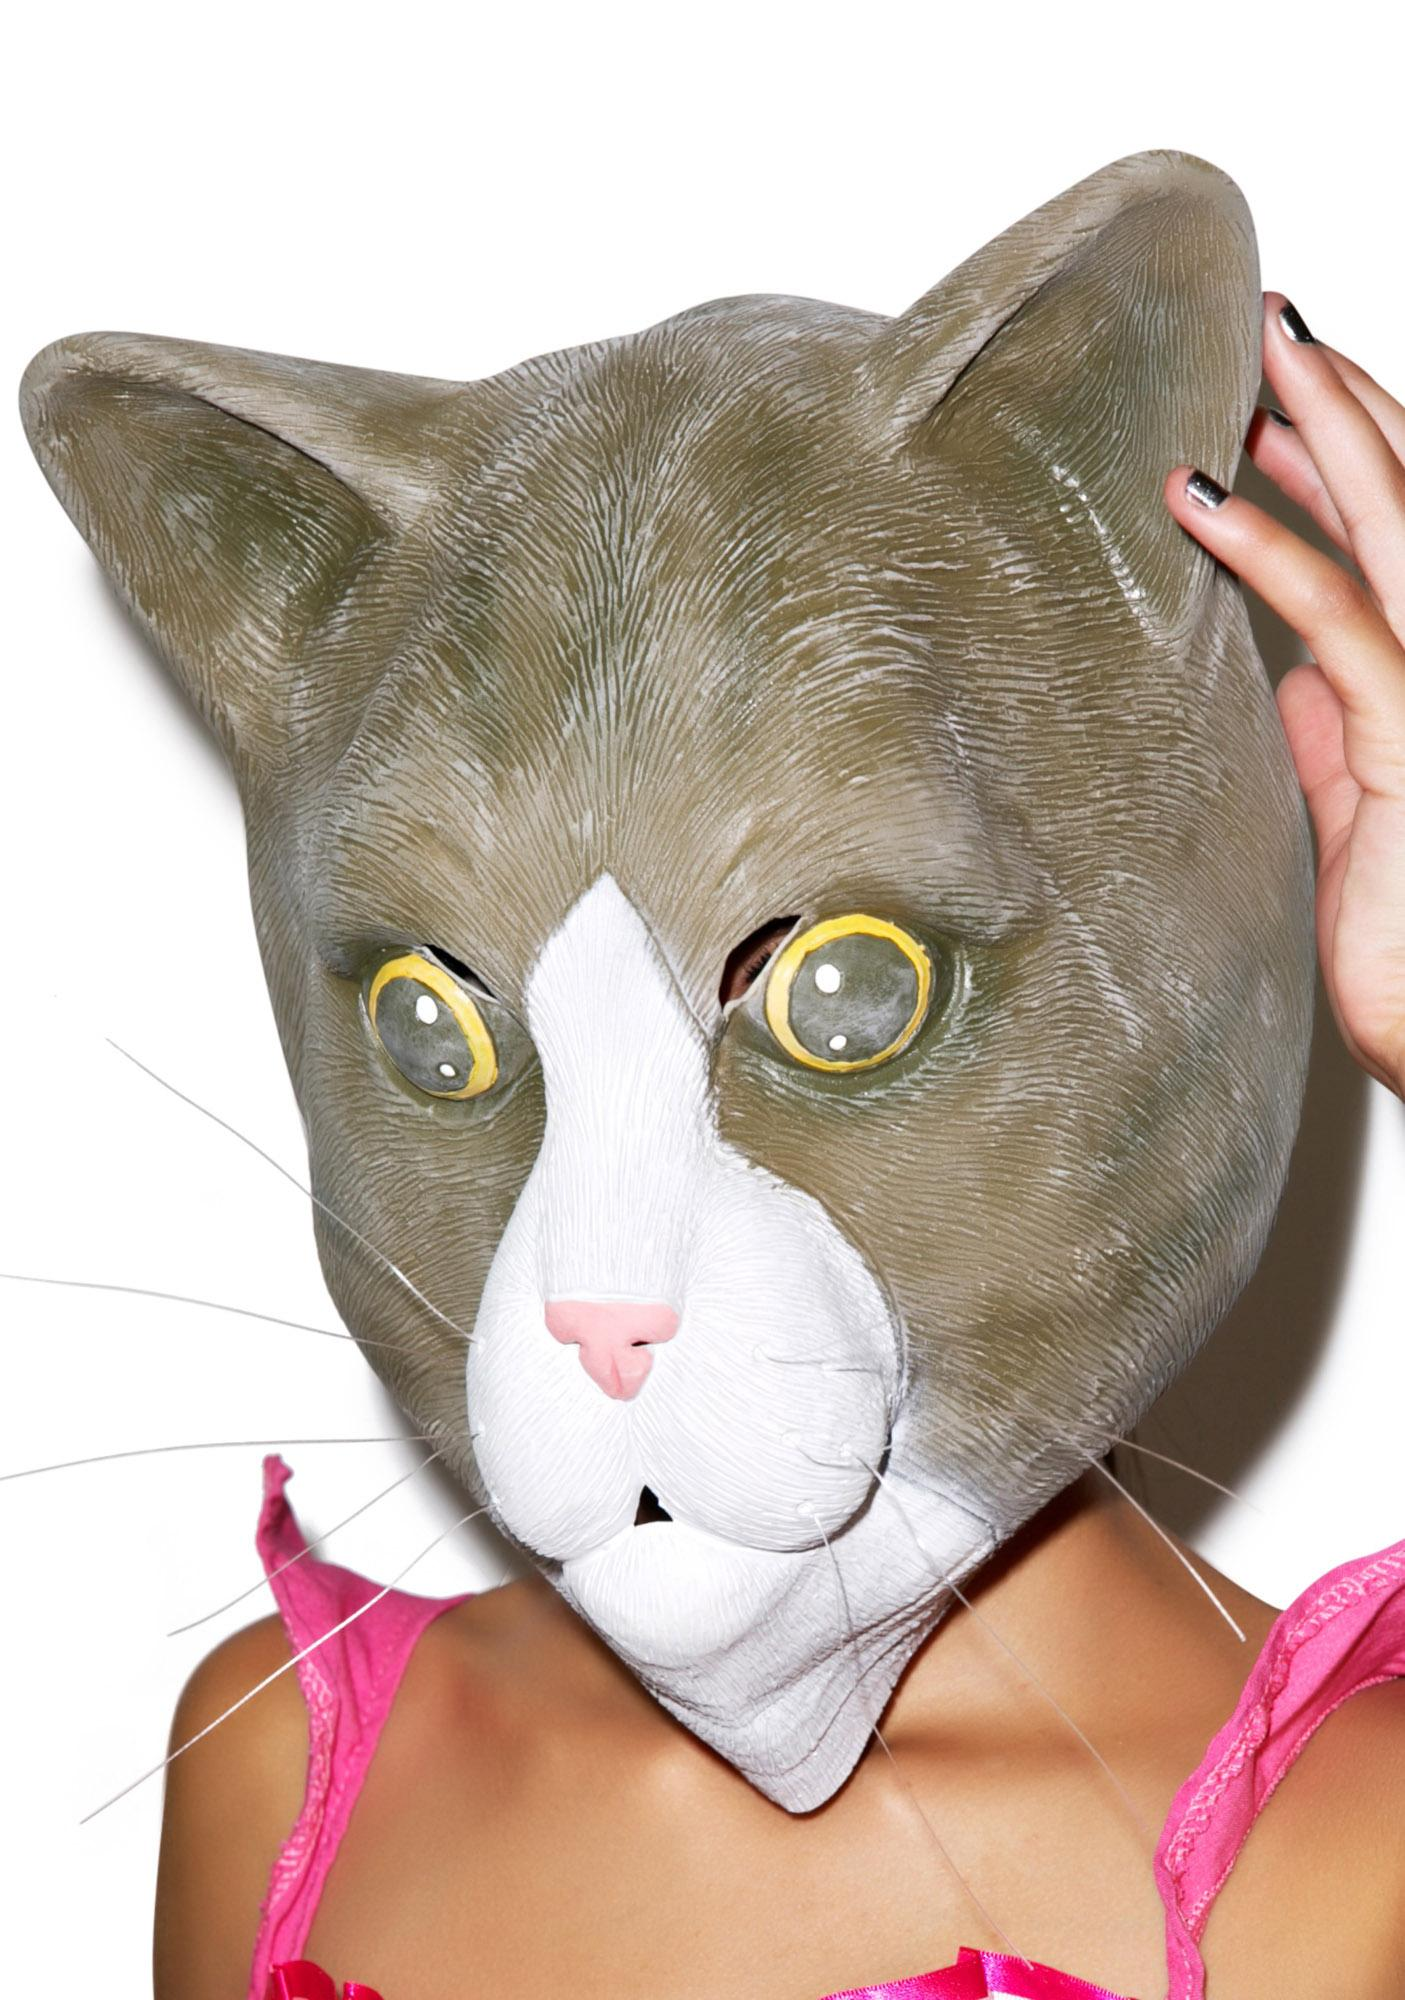 The Cat Burglar Mask